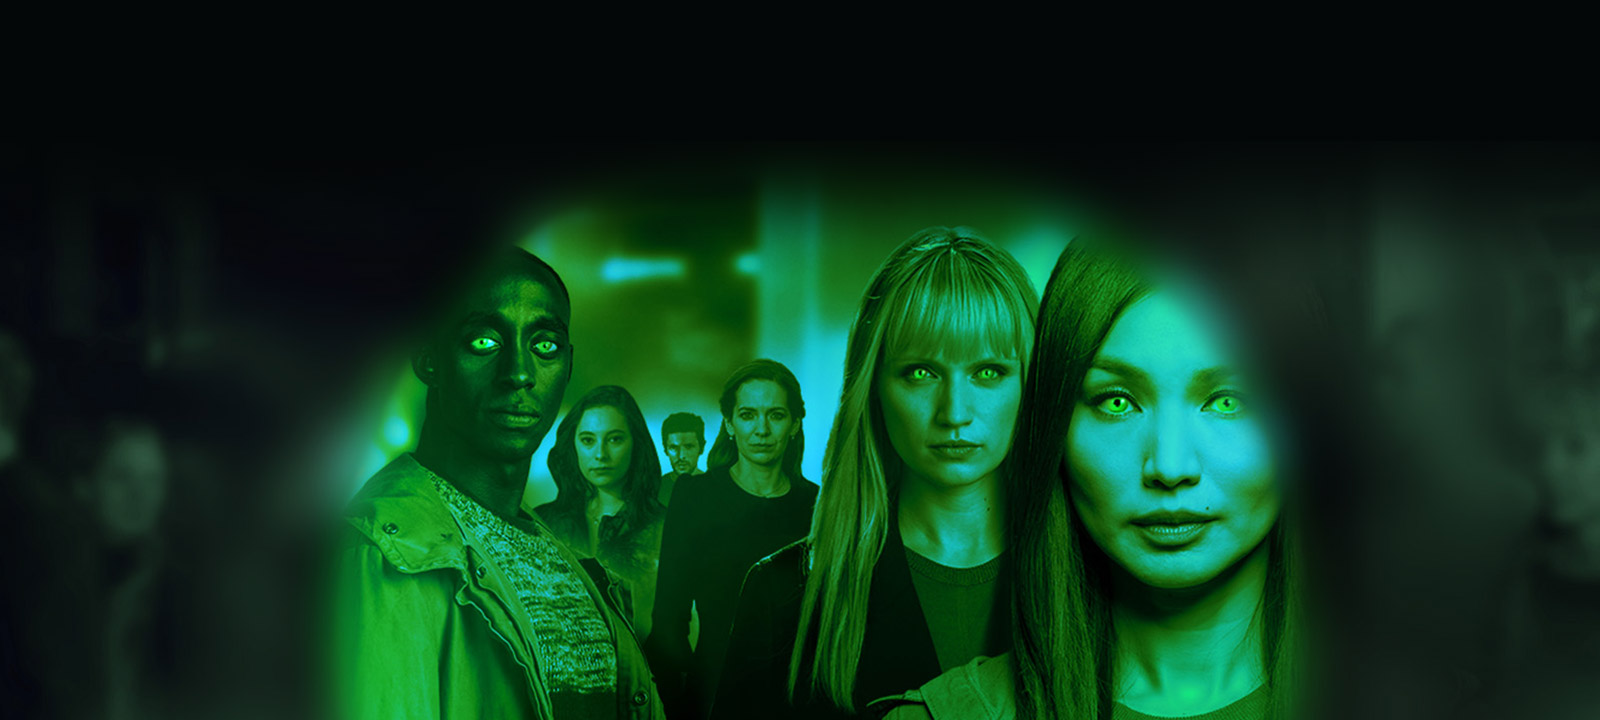 humans-comp-S3-key-V2-final-800×600